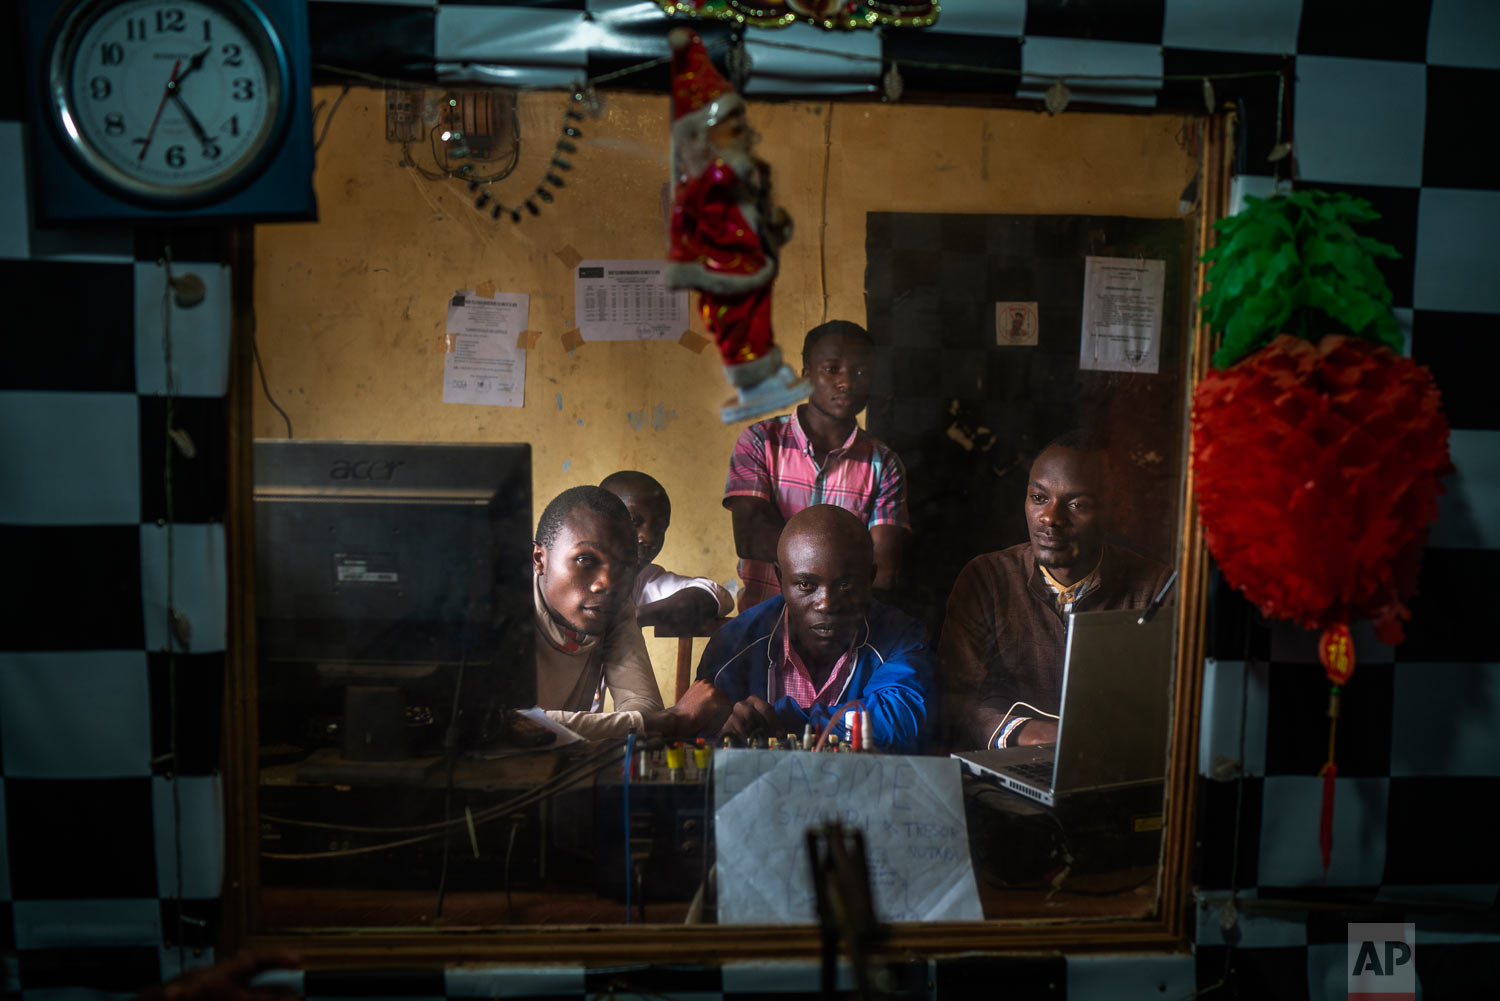 Congolese journalists broadcast an Ebola awareness program from a local radio station in Beni, Congo, July 13, 2019. (AP Photo/Jerome Delay)